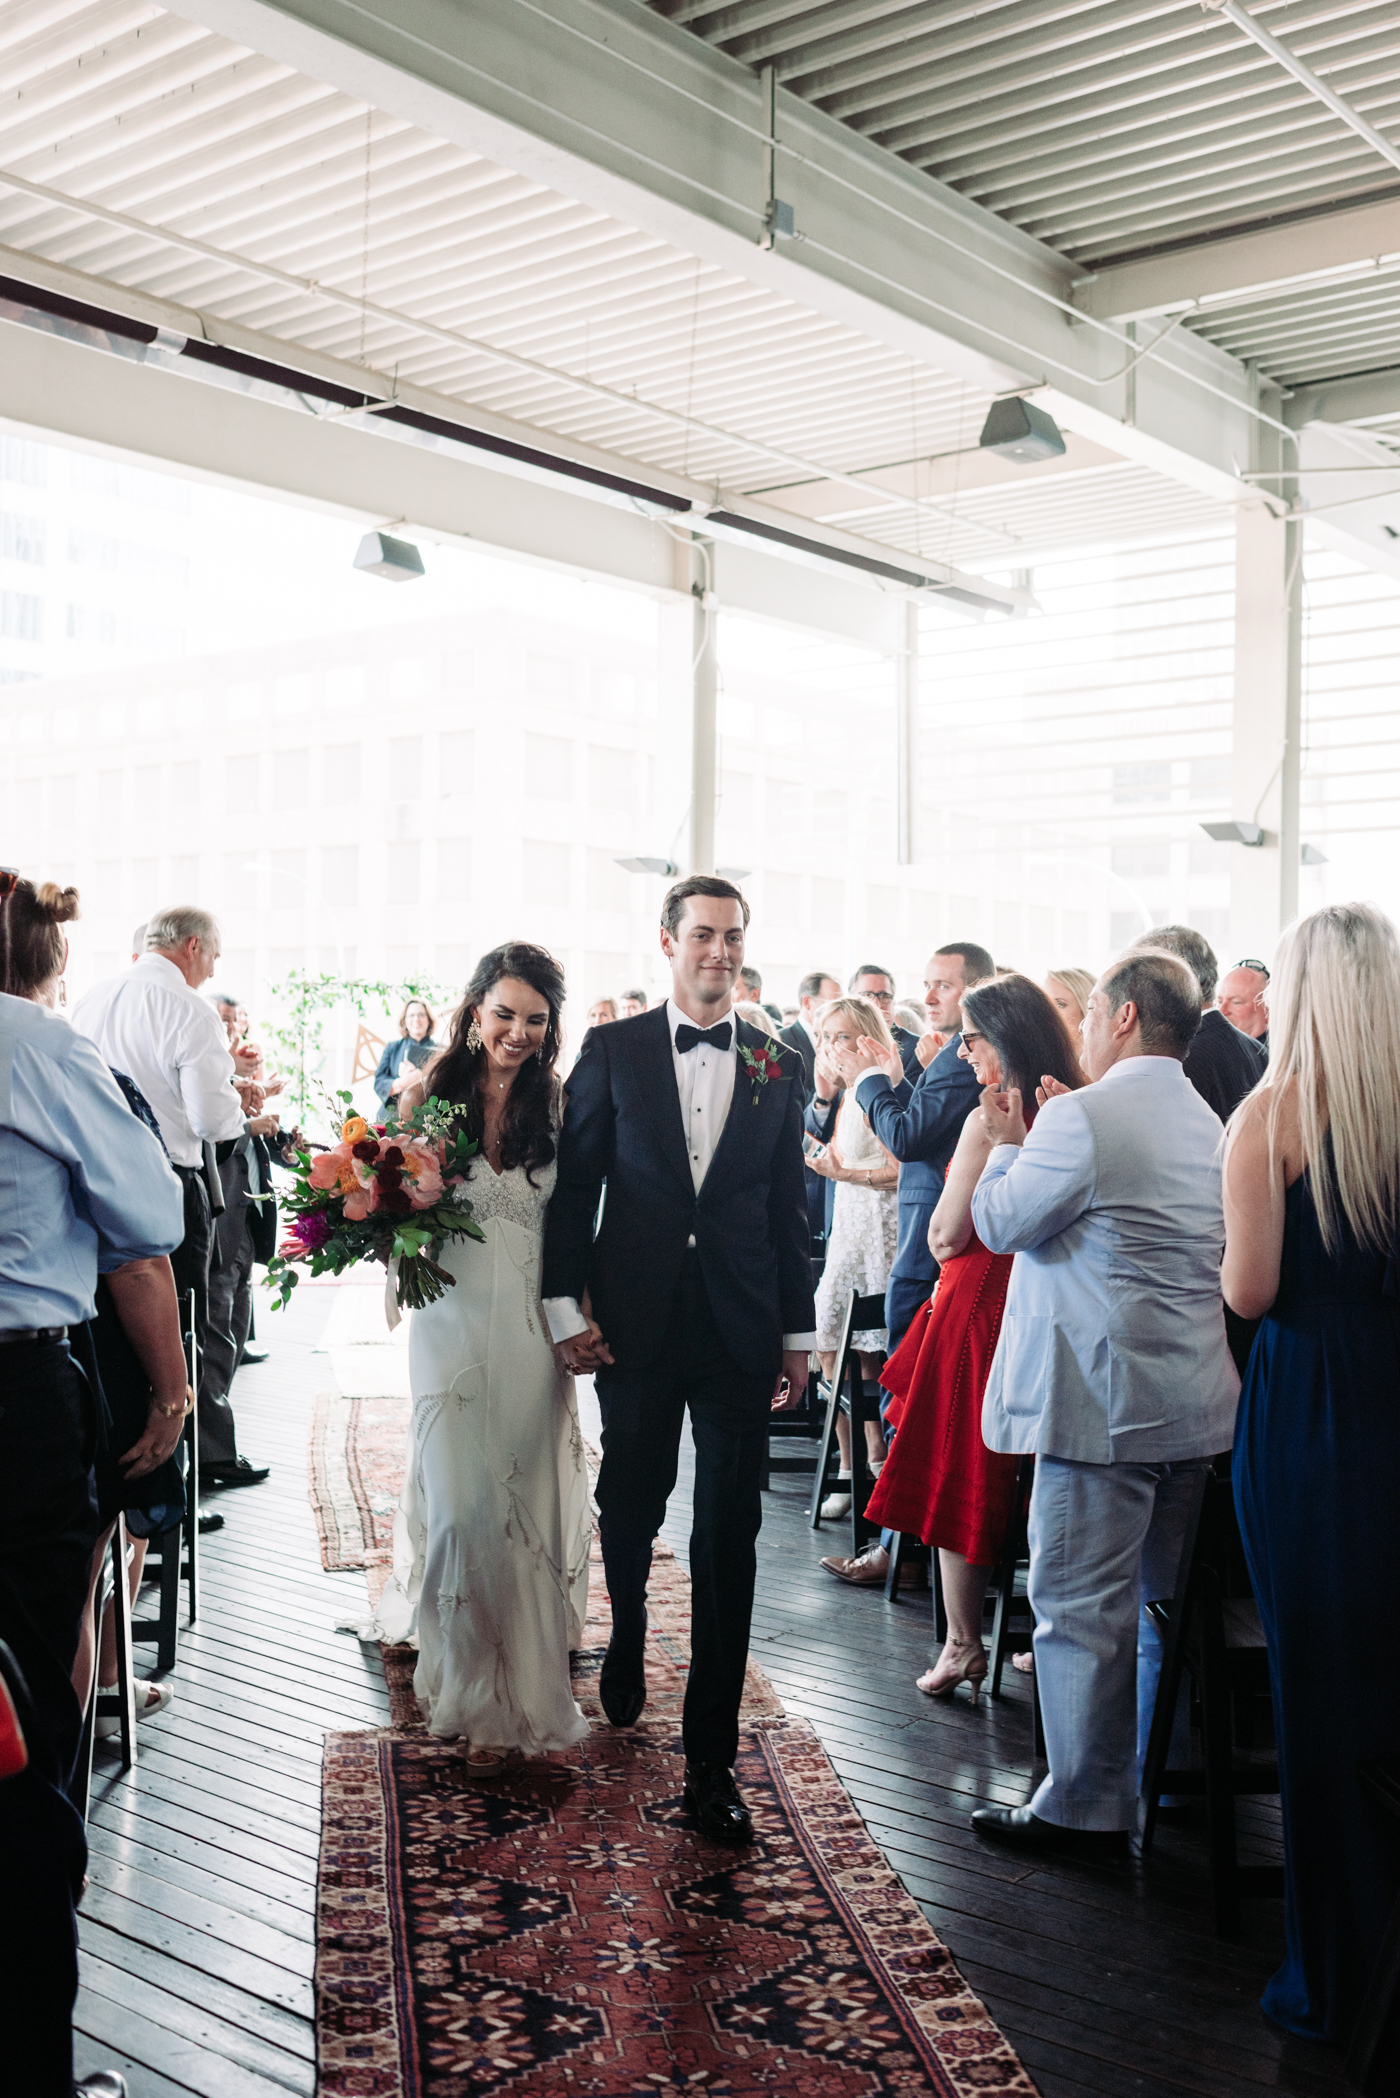 austin.wedding.bbp (89 of 125).jpg